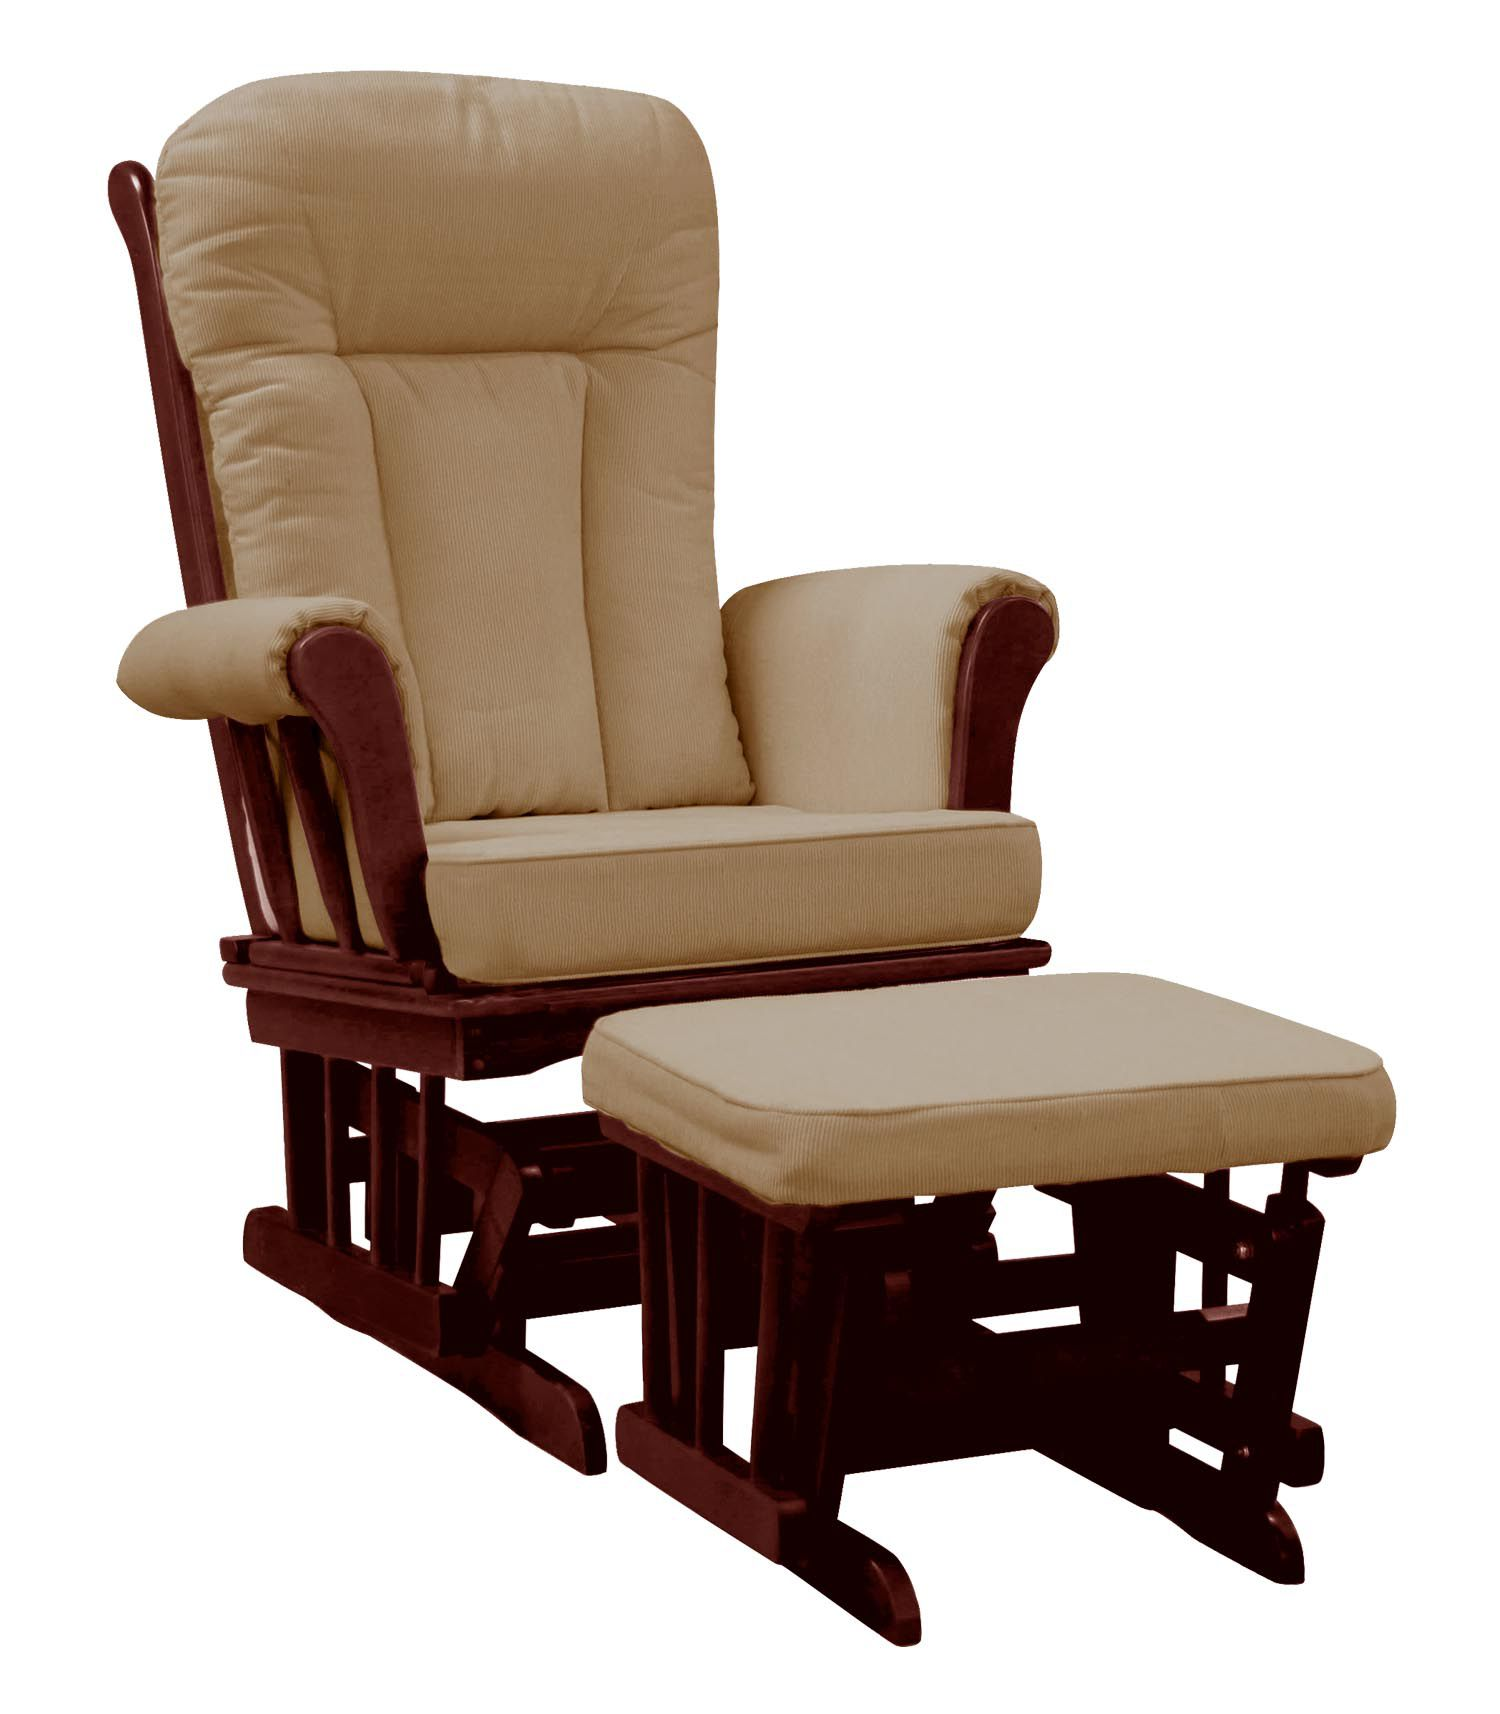 rocking chair ottoman cushions picture frame moulding under rail dream on me elysium glider rocker and matching